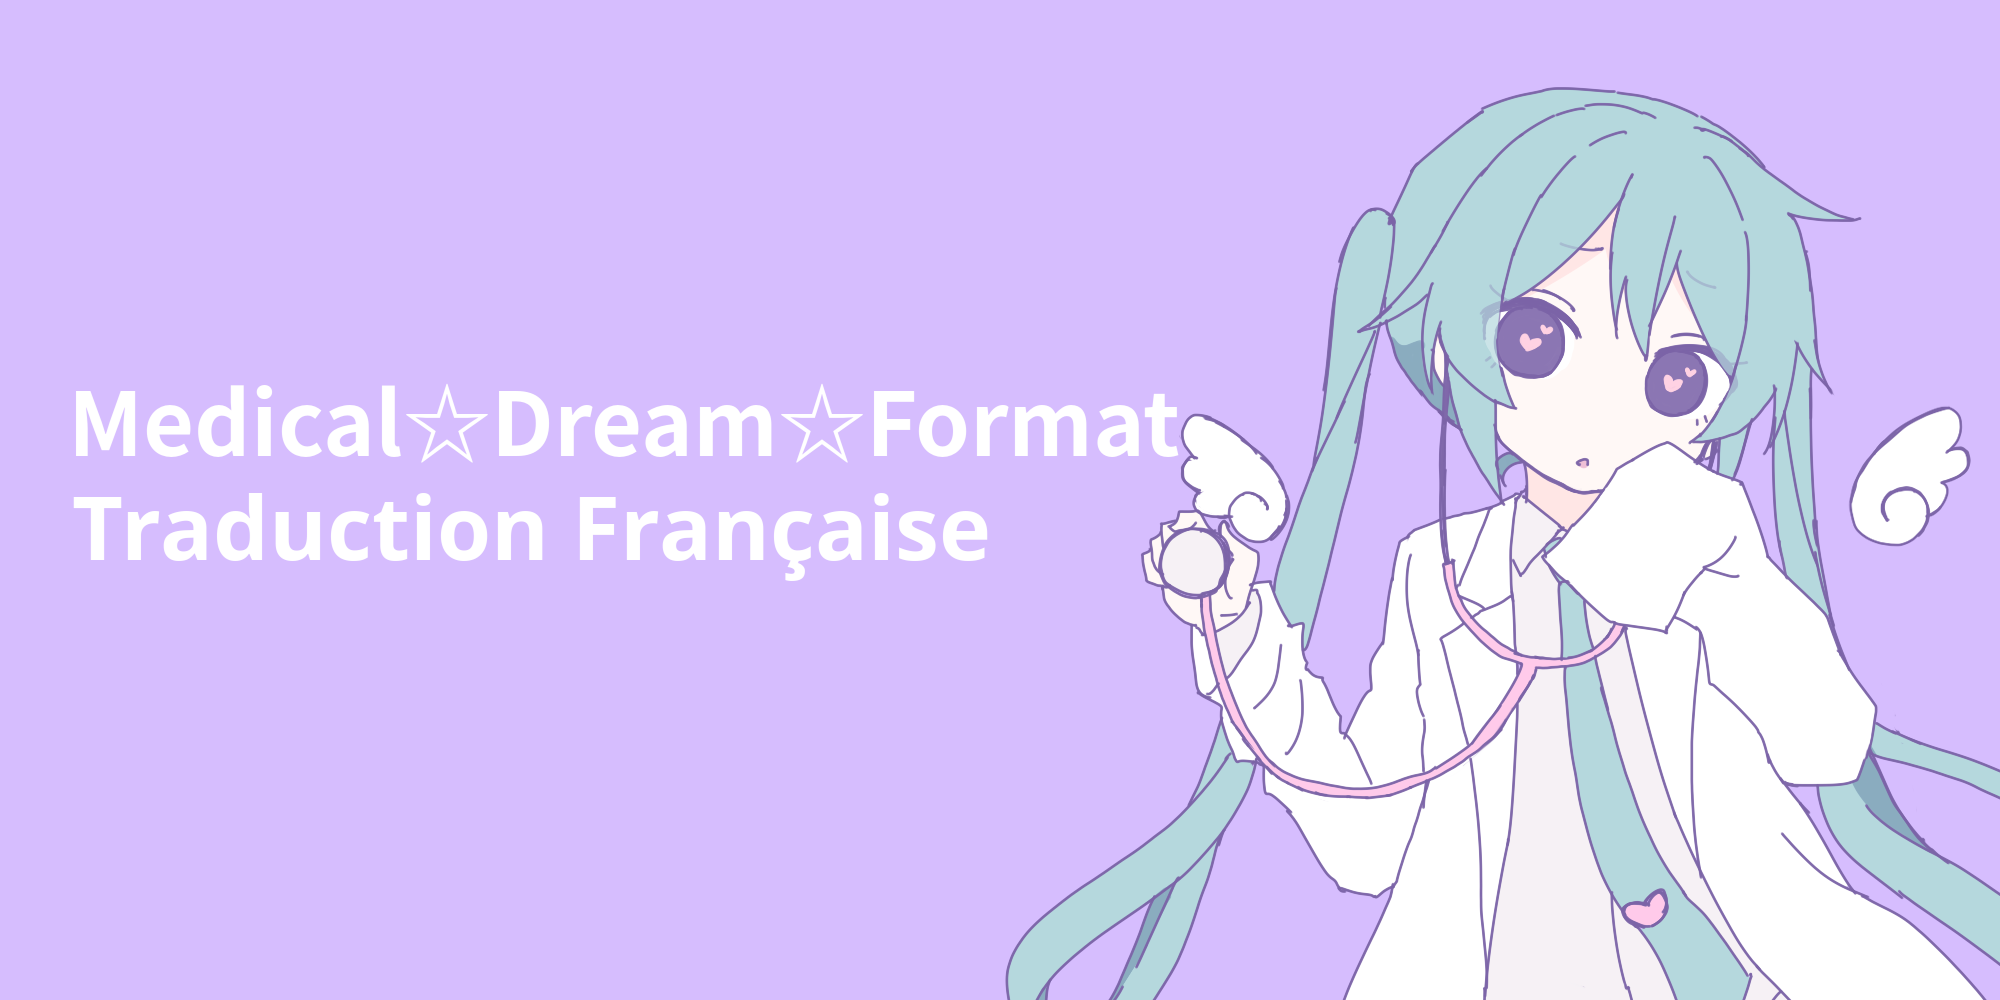 Traduction en français de Medical☆Dream☆Format - Miku Hatsune pour Lamaze-P